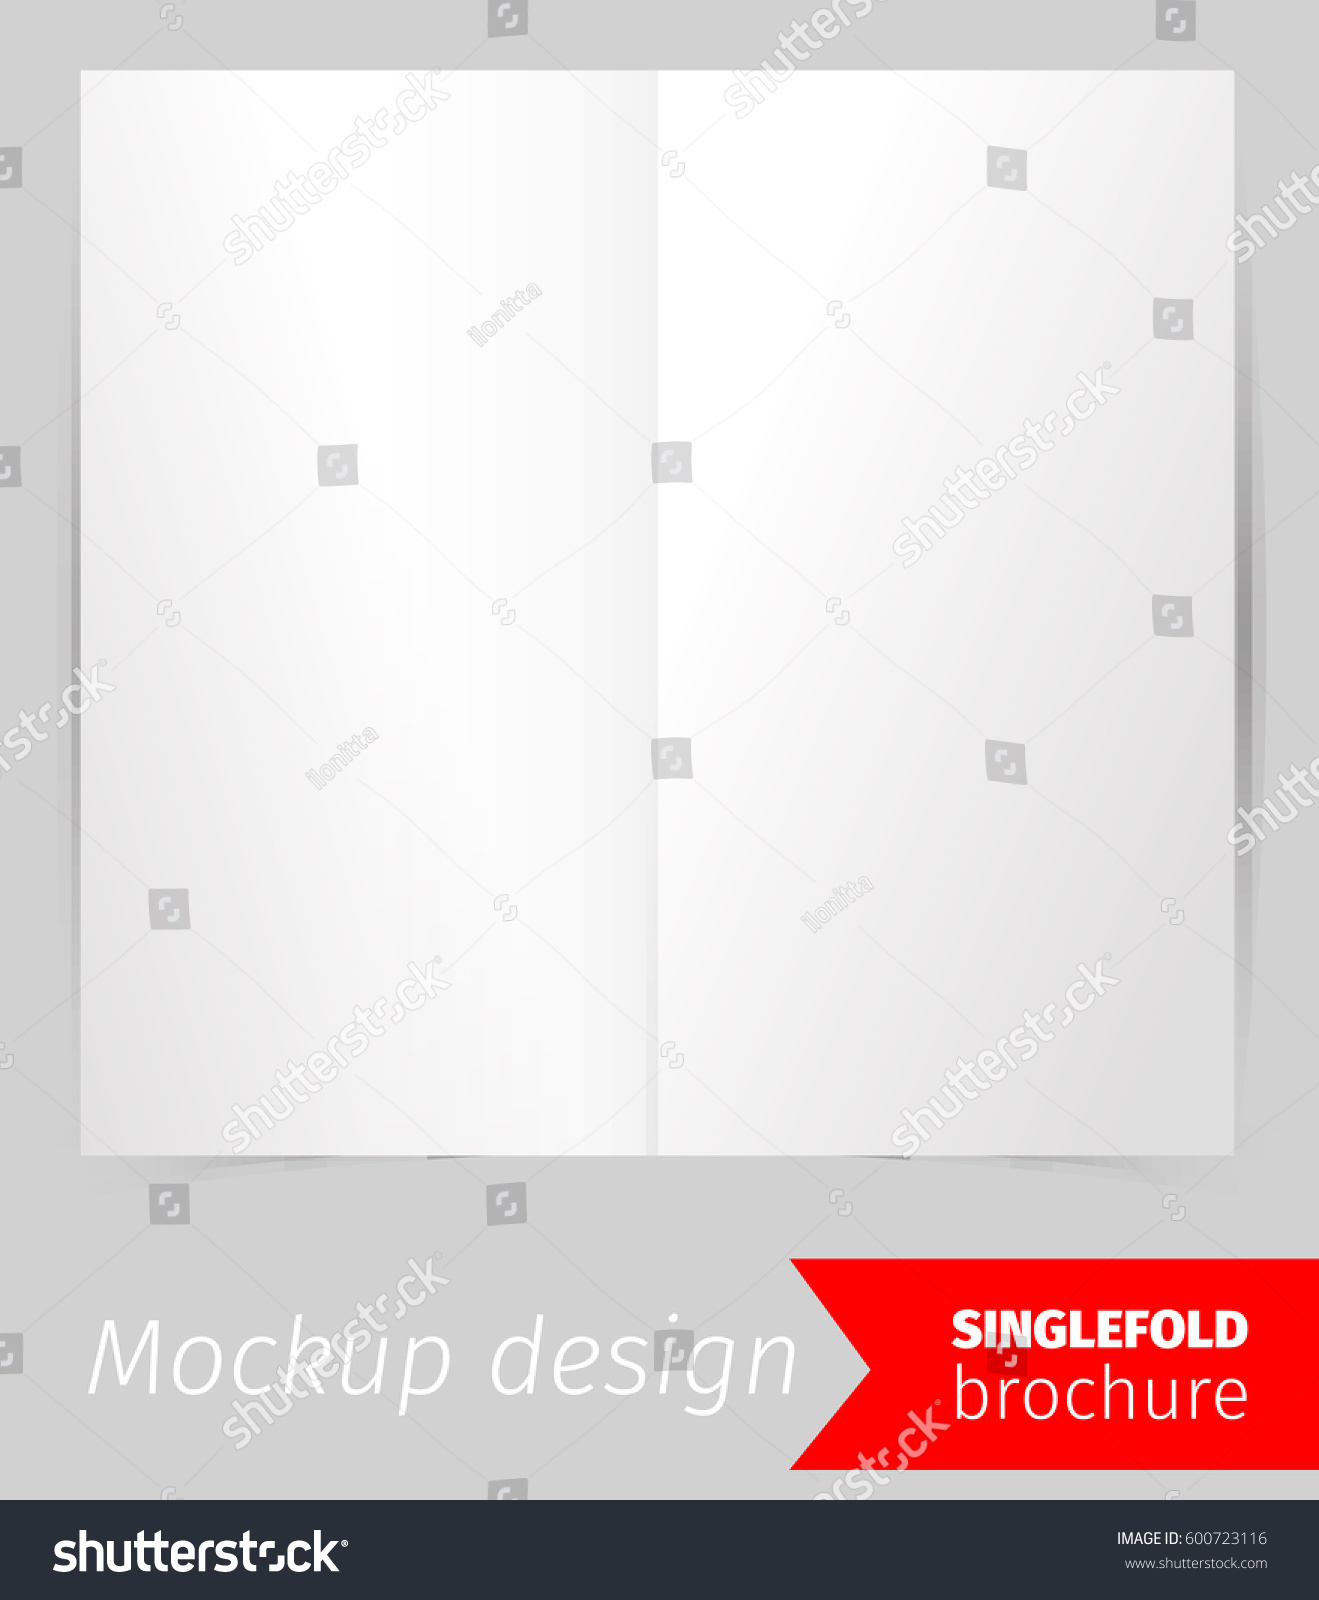 single fold brochure mockup design blank stock vector 600723116